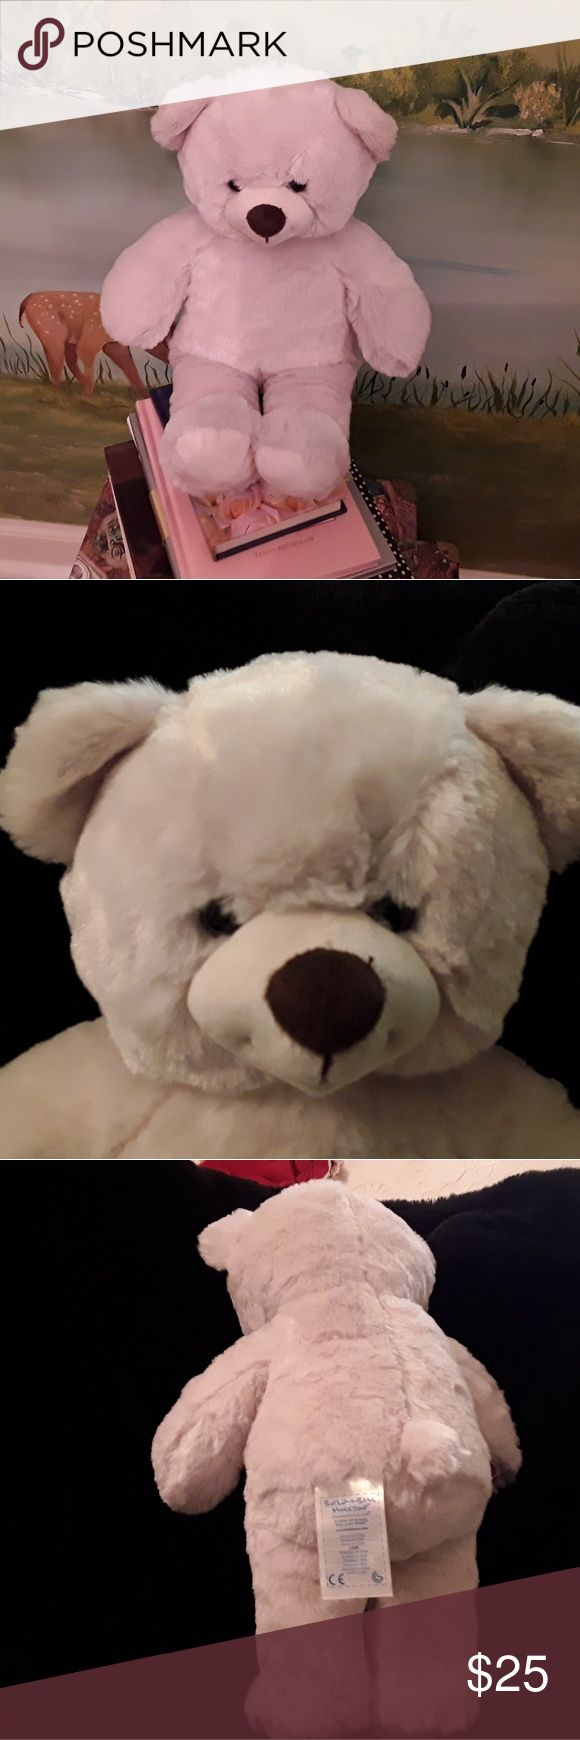 """NEW CUDLIE BUILD A BEAR WORKSHOP BEAR, CREAM I HAVE FOR SALE A NEW DARLING CUDLIE SOFT BEAR FROM BUILD A BEAR WORKSHOP.  IT IS CREAM IN COLOR AND HAS THE """"BABY"""" LOGO ON RIGHT PAW.  THE BEAR IS 10.5 """" X 11"""".  THIS WOULD MAKE A GREAT GREAT FOR YOUR LITTLE ONE, YOU CAN TAKE IT TO A STORE NEAR YOU AND MAKE IT ONE OF A KIND BY YOUR IMAGINATION.  IF YOU HAVE ANY QUESTIONS ABOUT THIS BEAR PLEASE ASK AND THANK YOU FOR YOUR SHOPPING MY CLOSET. Build a Bear Workshop Other"""